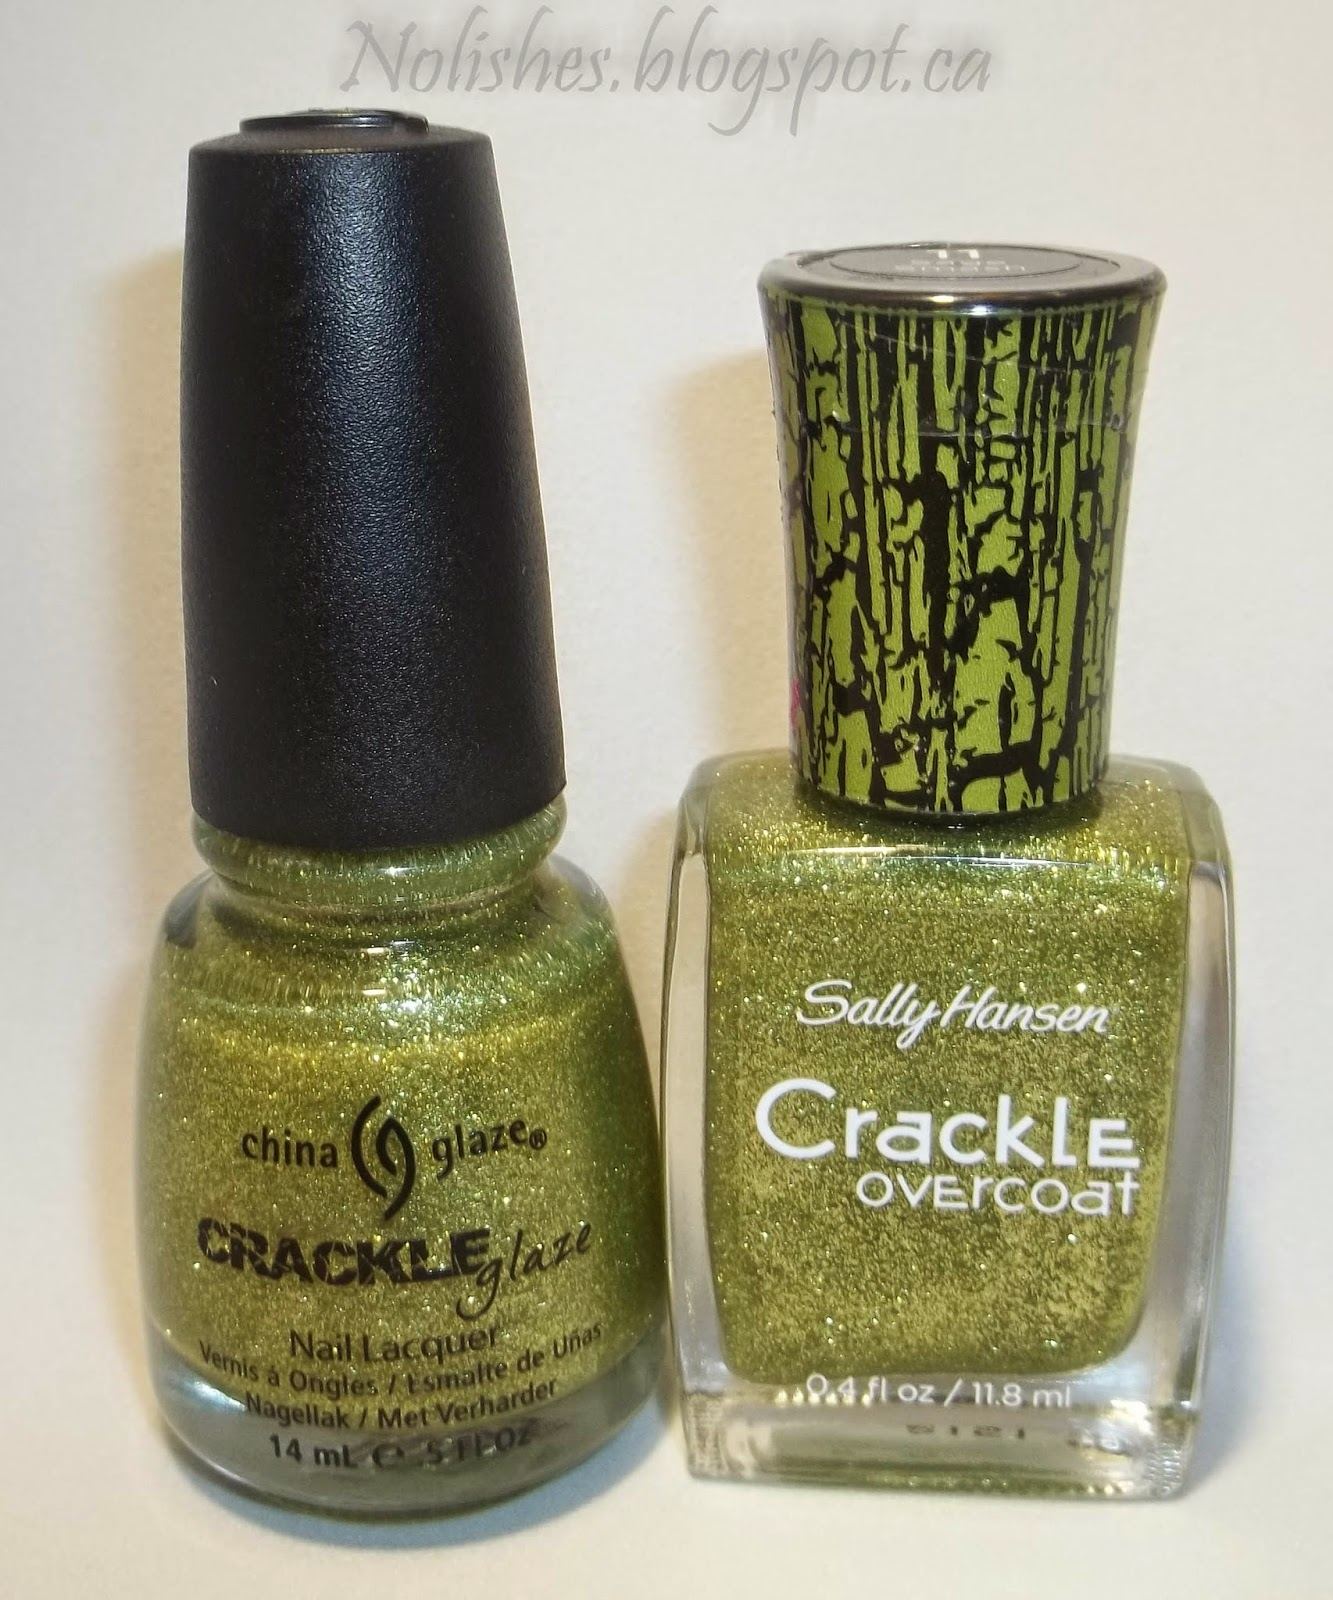 Picture of 2 bottles of nail polish: China Glaze Crackle Glaze in 'Jade-d', and Sally Hansen Crackle Overcoat in 'Sage Smash'